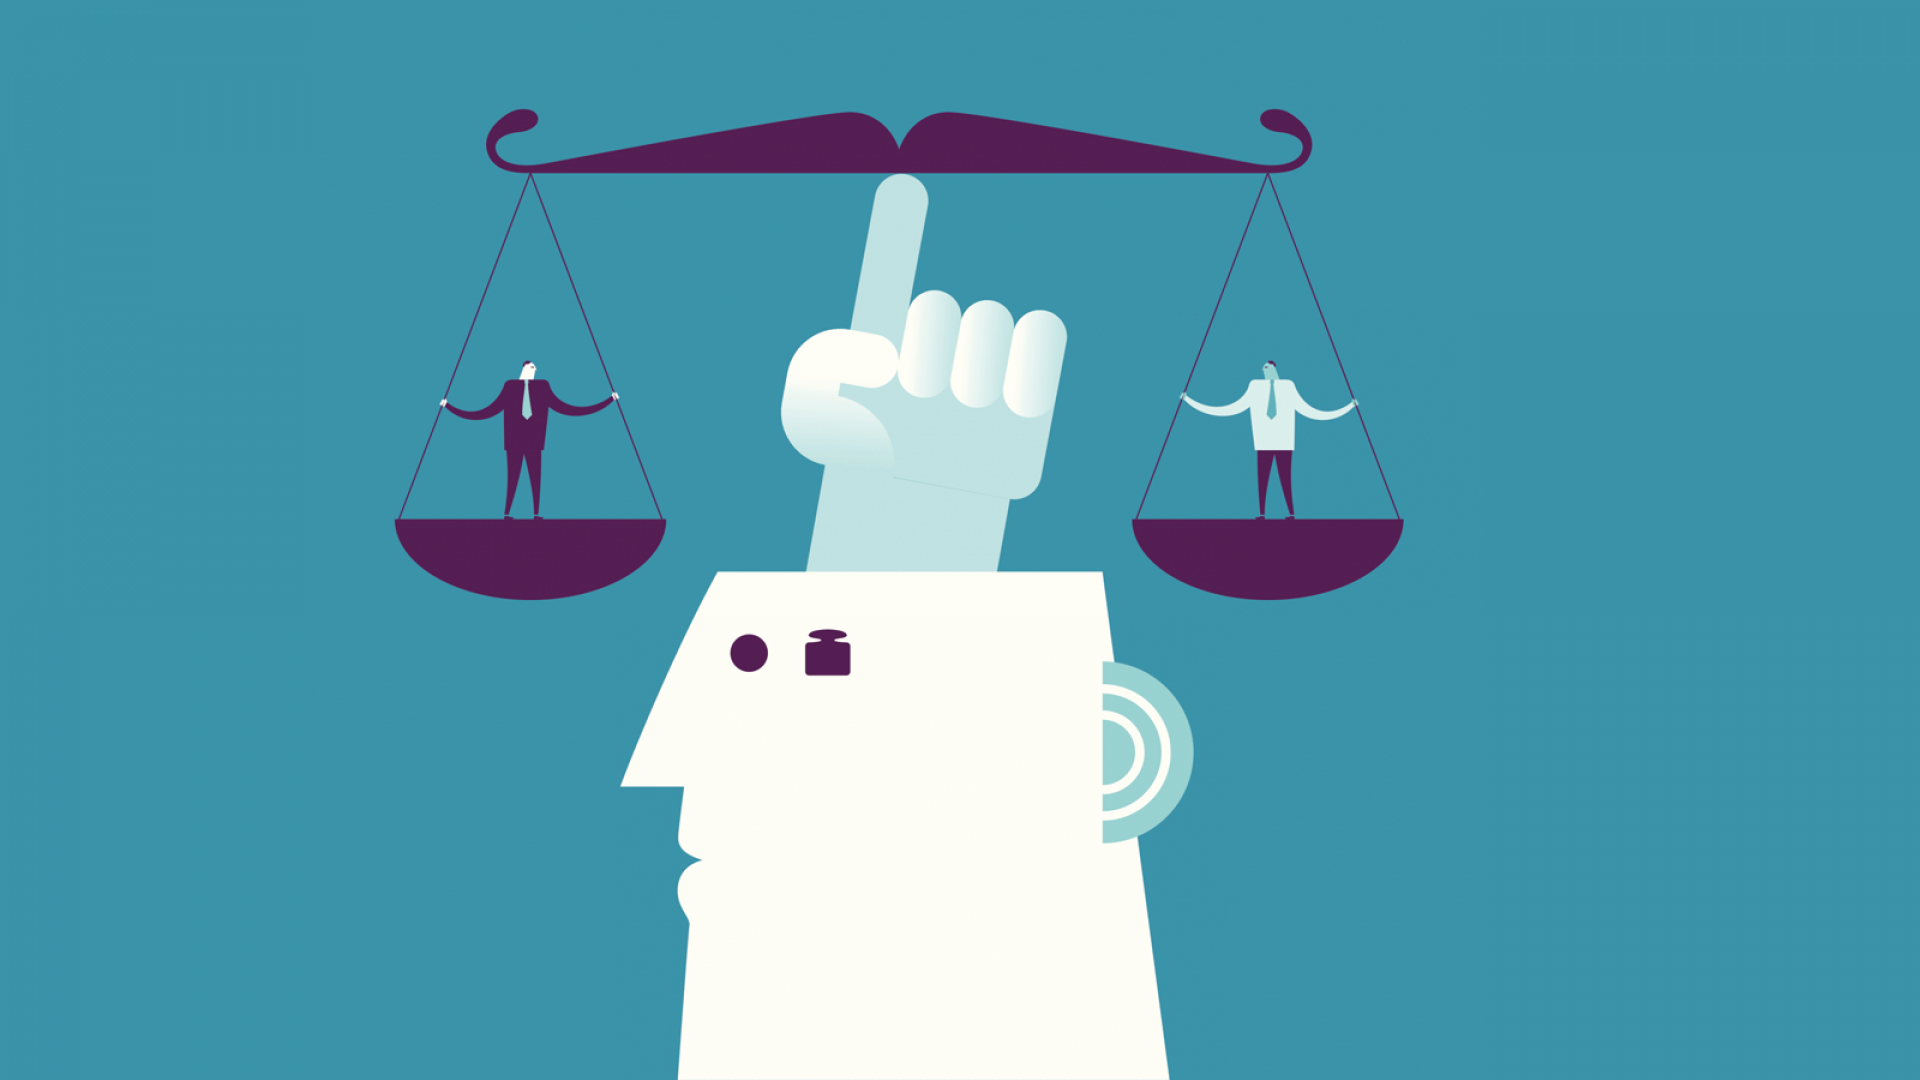 Emotional Intelligence Is Critical for Leaders to Make an Impact